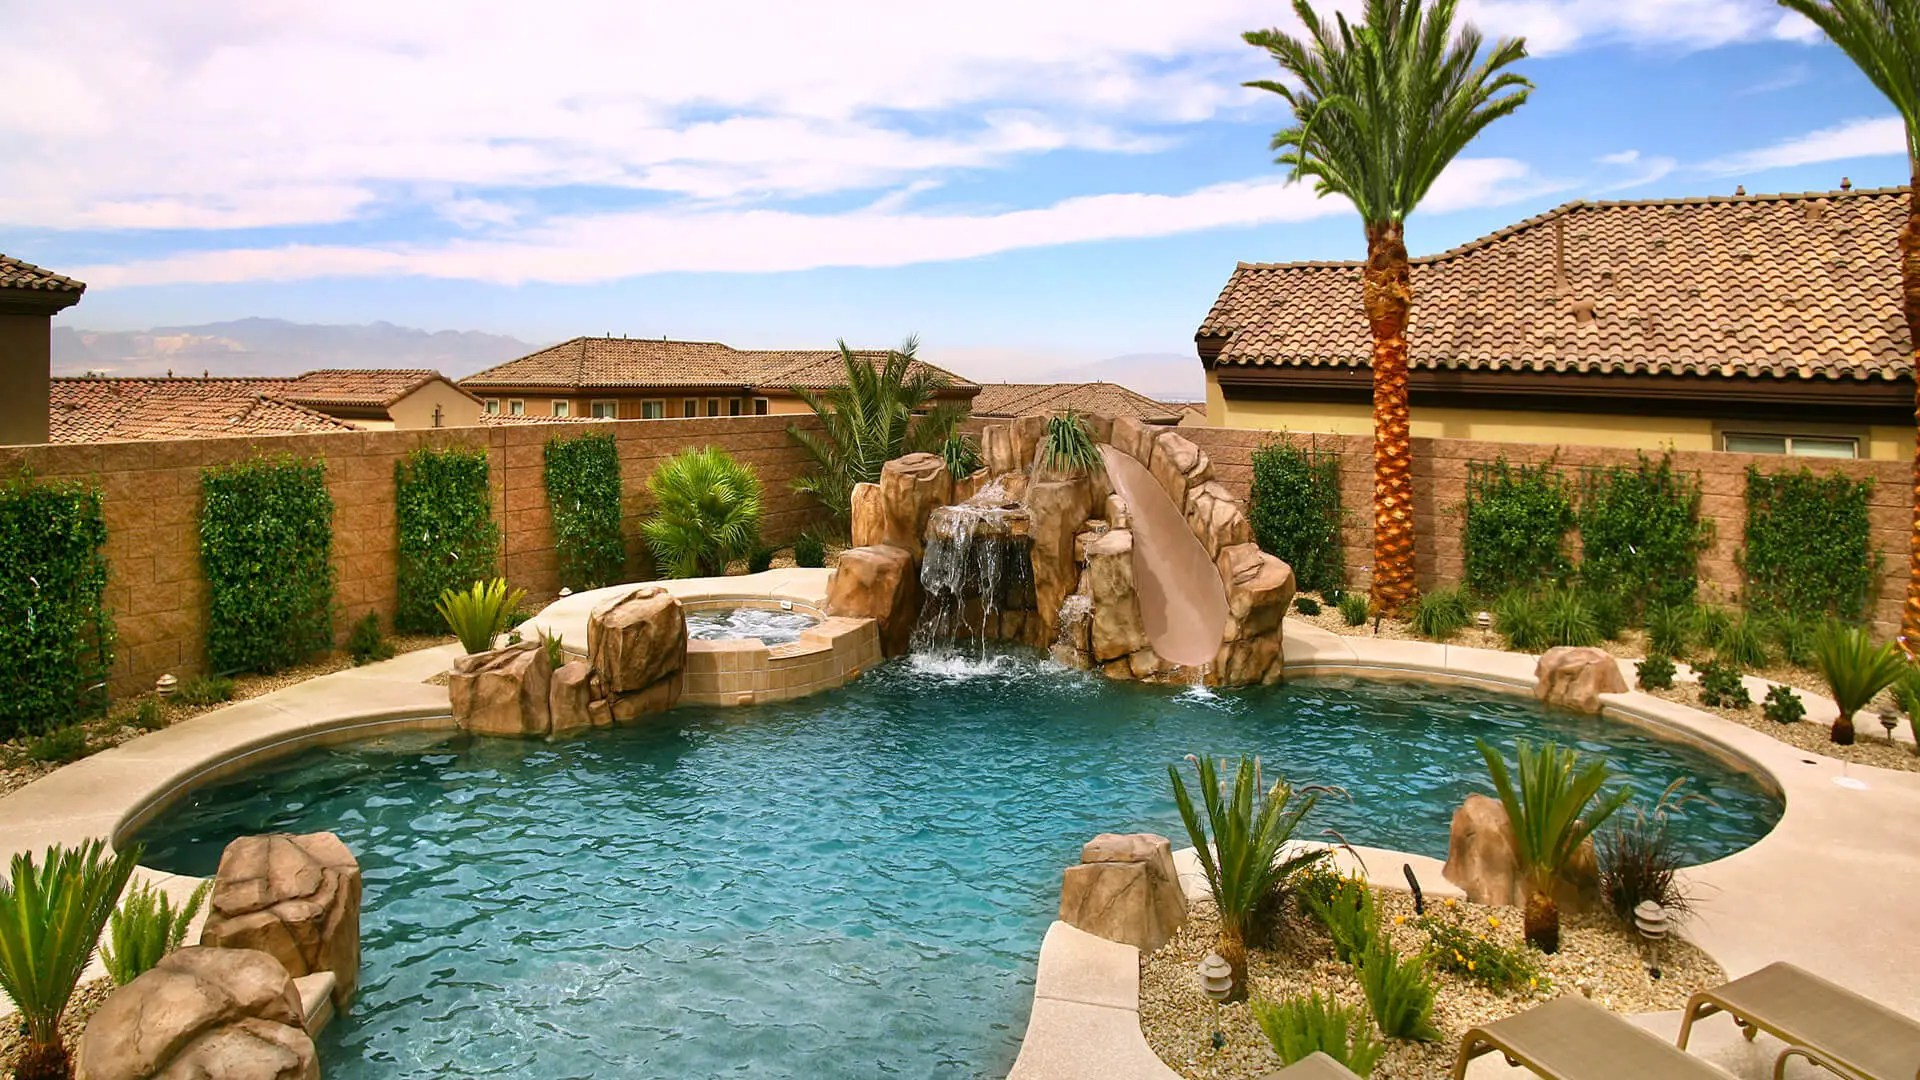 Custom Rockscape Swimming Pool Design & Construction - Clarity Pool Service of Southern Nevada